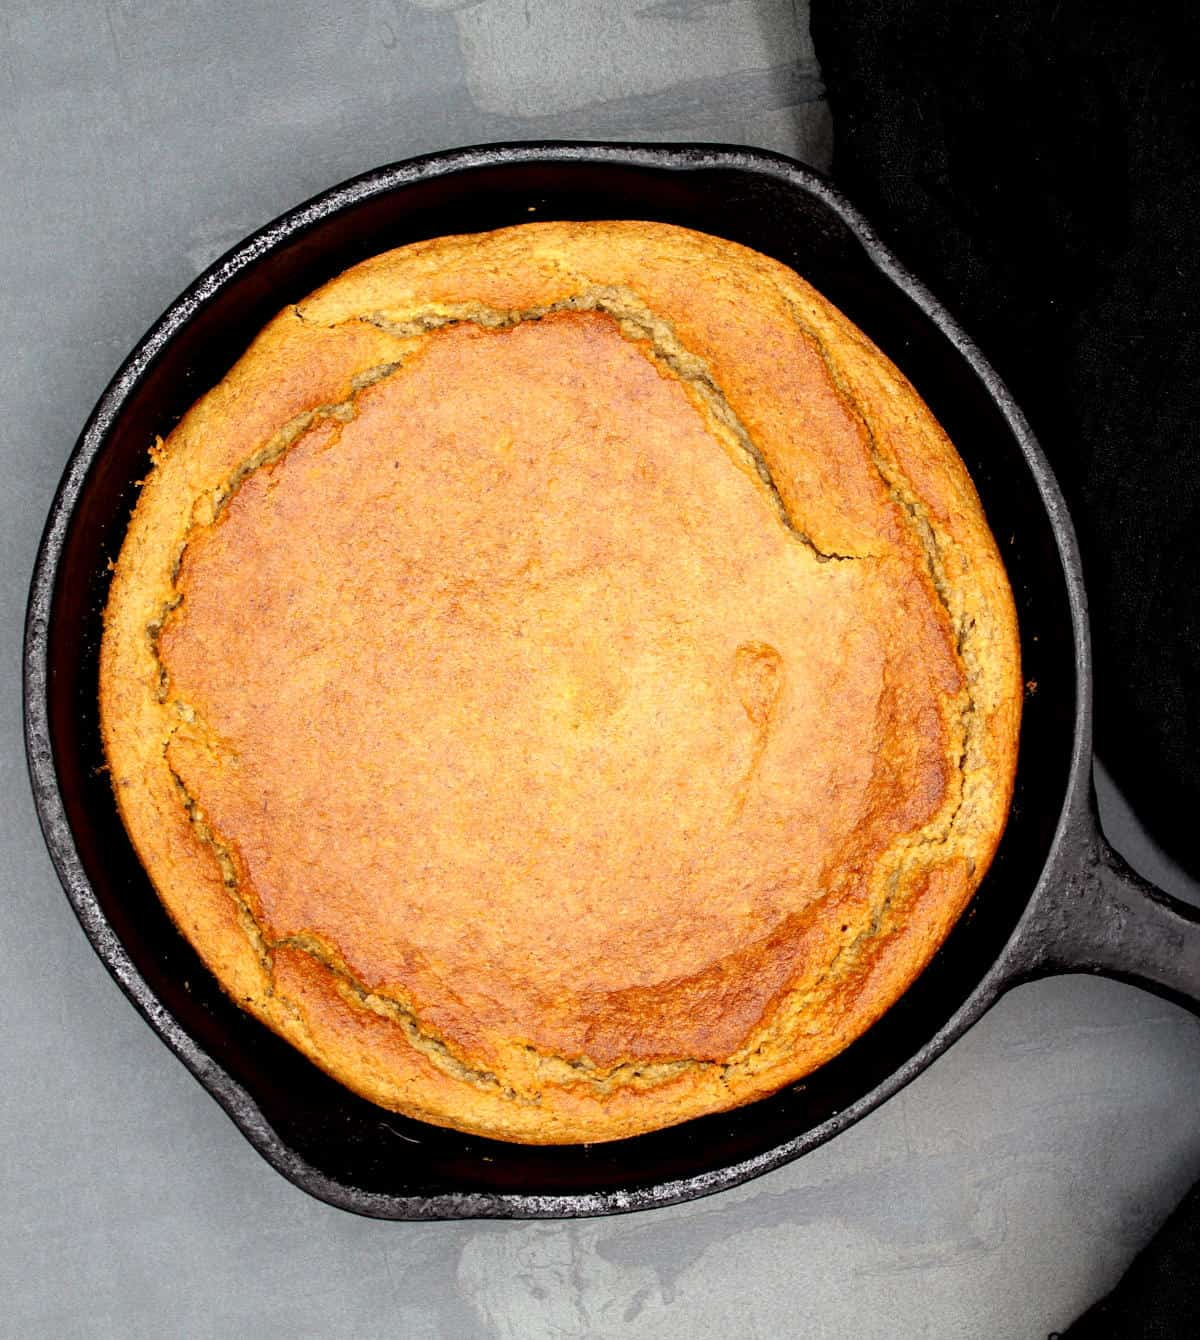 Vegan upside down banana cake in a cast iron skillet after baking and before unmolding.